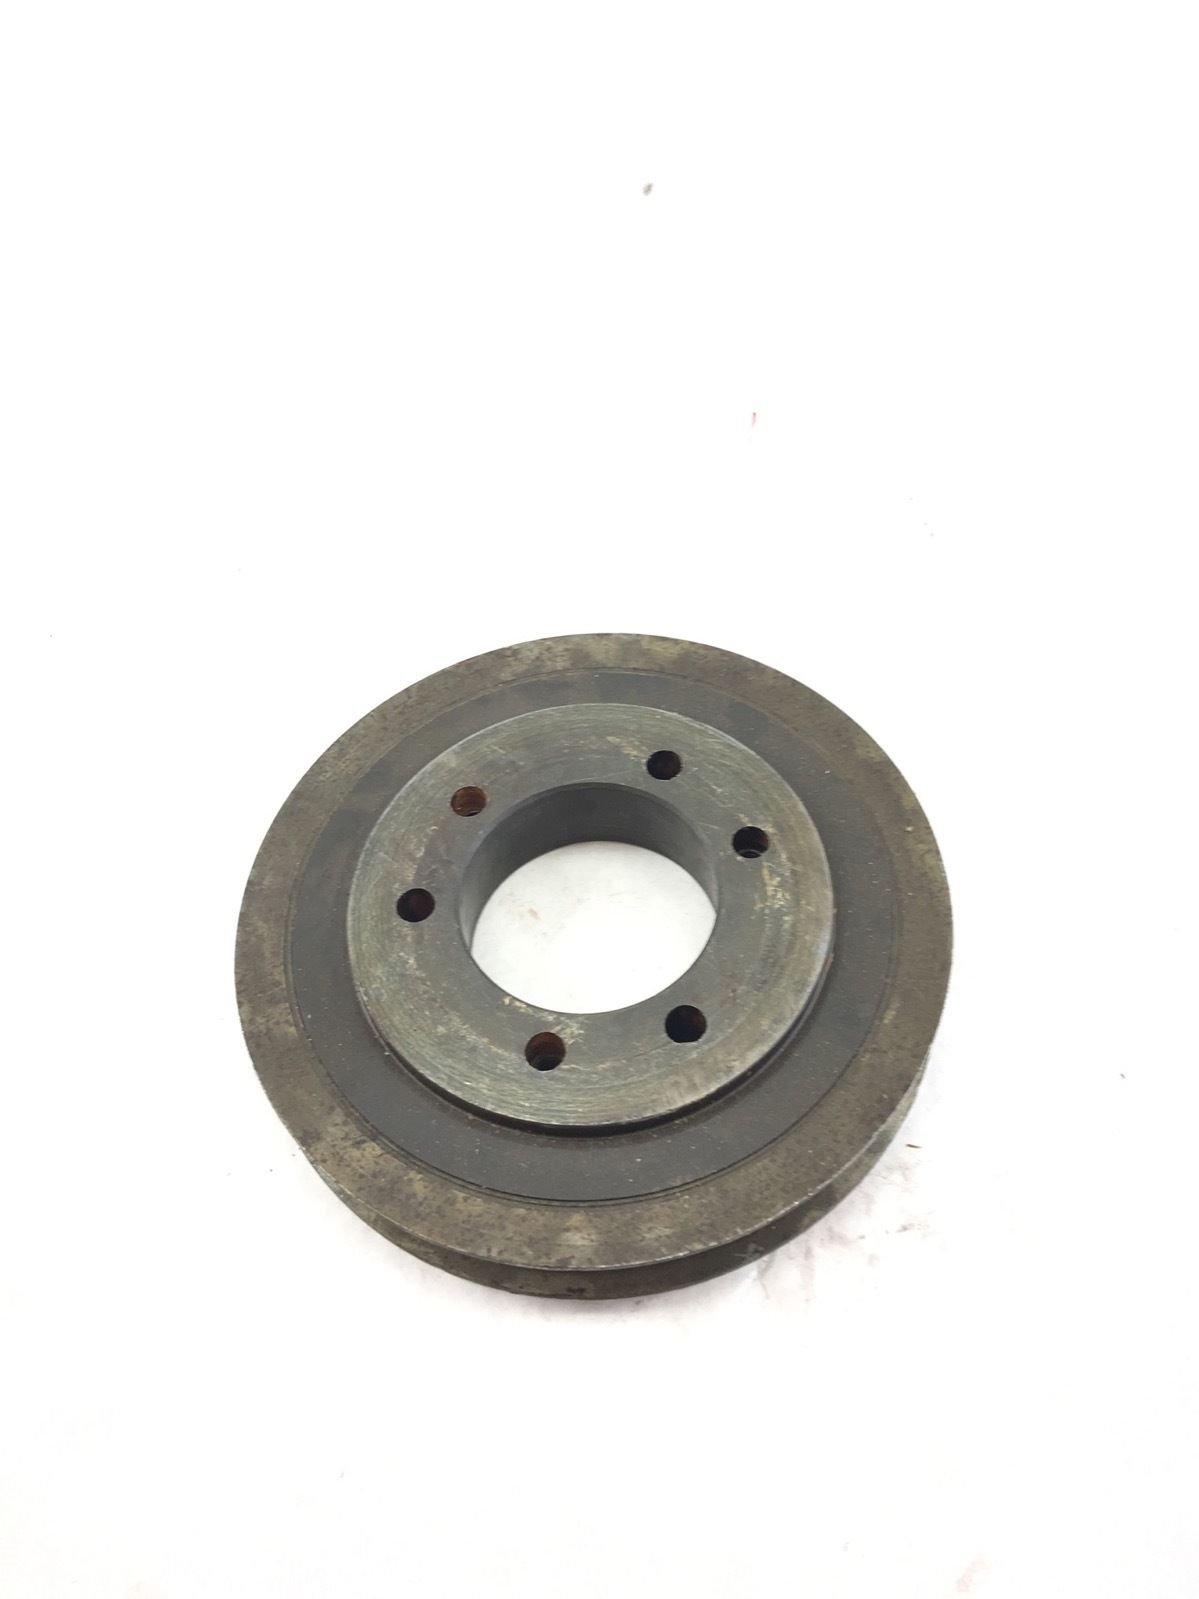 GATES Polychain GT 14M-56S-20 Timing Belt Pulley, Cast Iron, Taper Bushing, B384 1